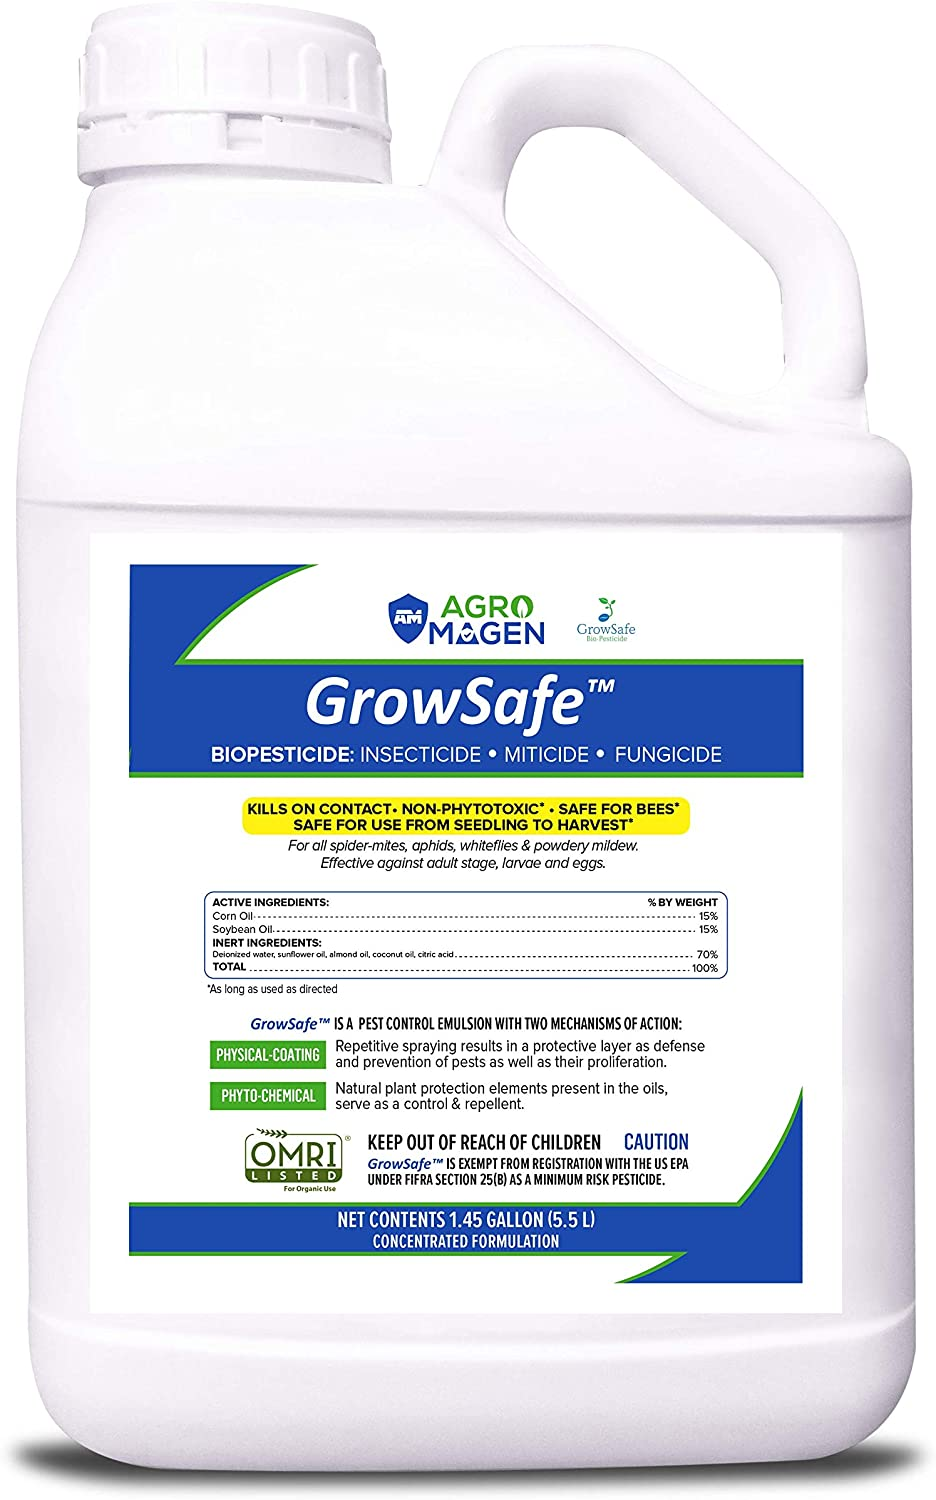 AgroMagen (GS420), GrowSafe Bio-Pesticide, Natural Miticide, Fungicide and Insecticide, for Organic Gardening, Non-Toxic, Concentrate (1.45 Gallon)